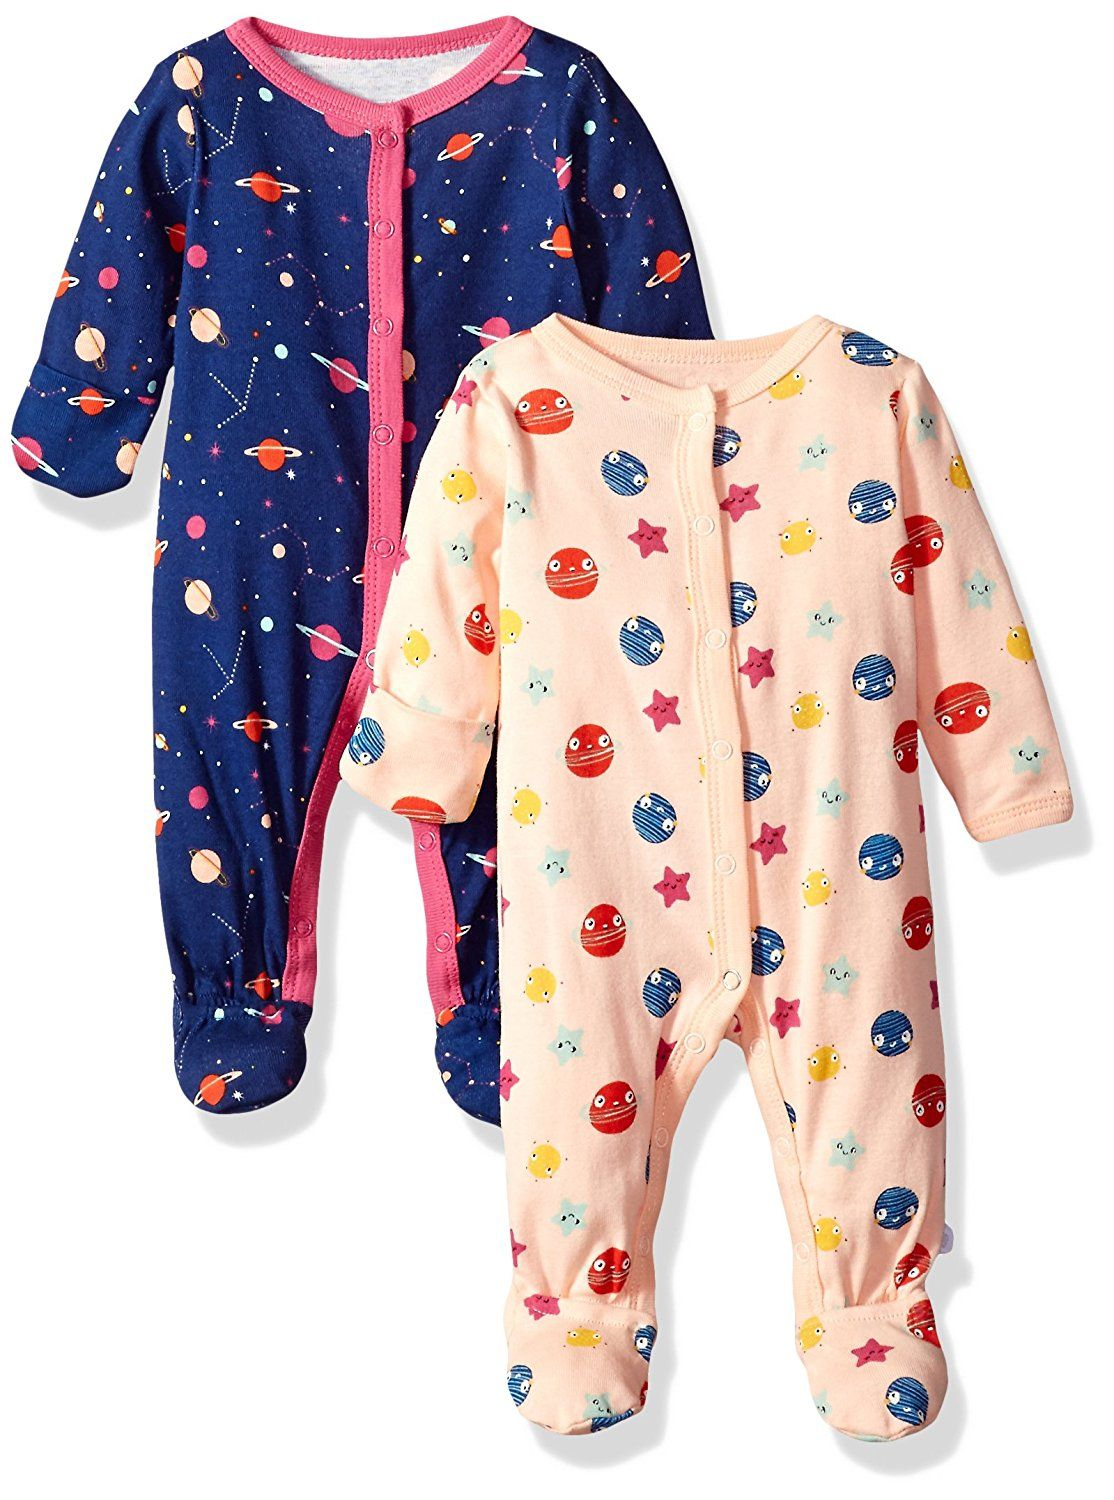 d6f6f71cf24c PAJAMAS WITH MITTENS! Amazon.com  Rosie Pope Baby Girls 2 Pack ...